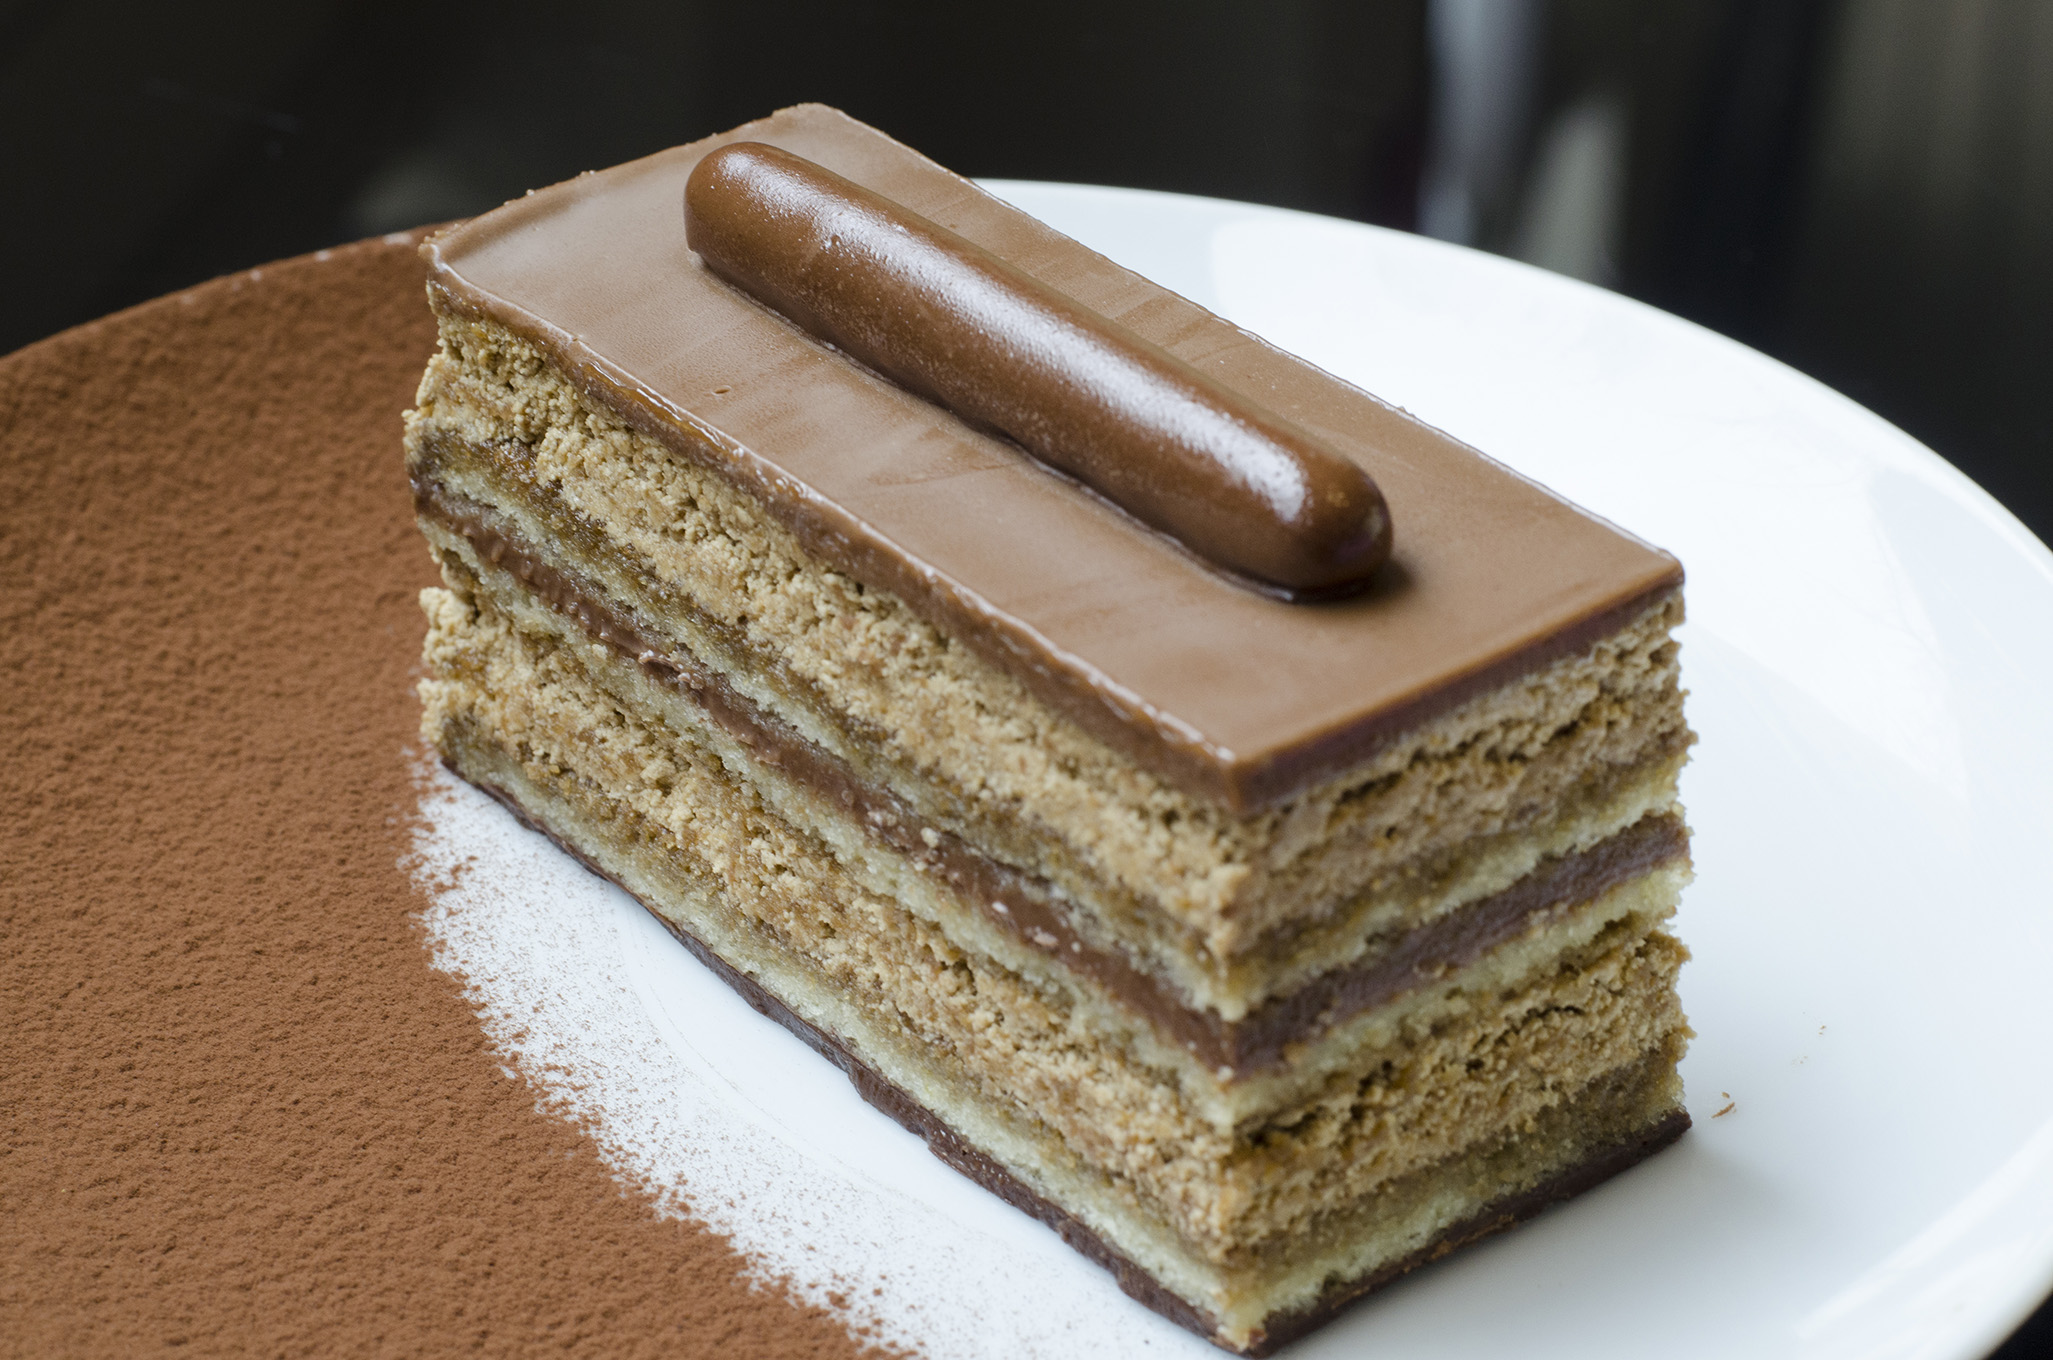 Opera cake was made famous in Paris, France.